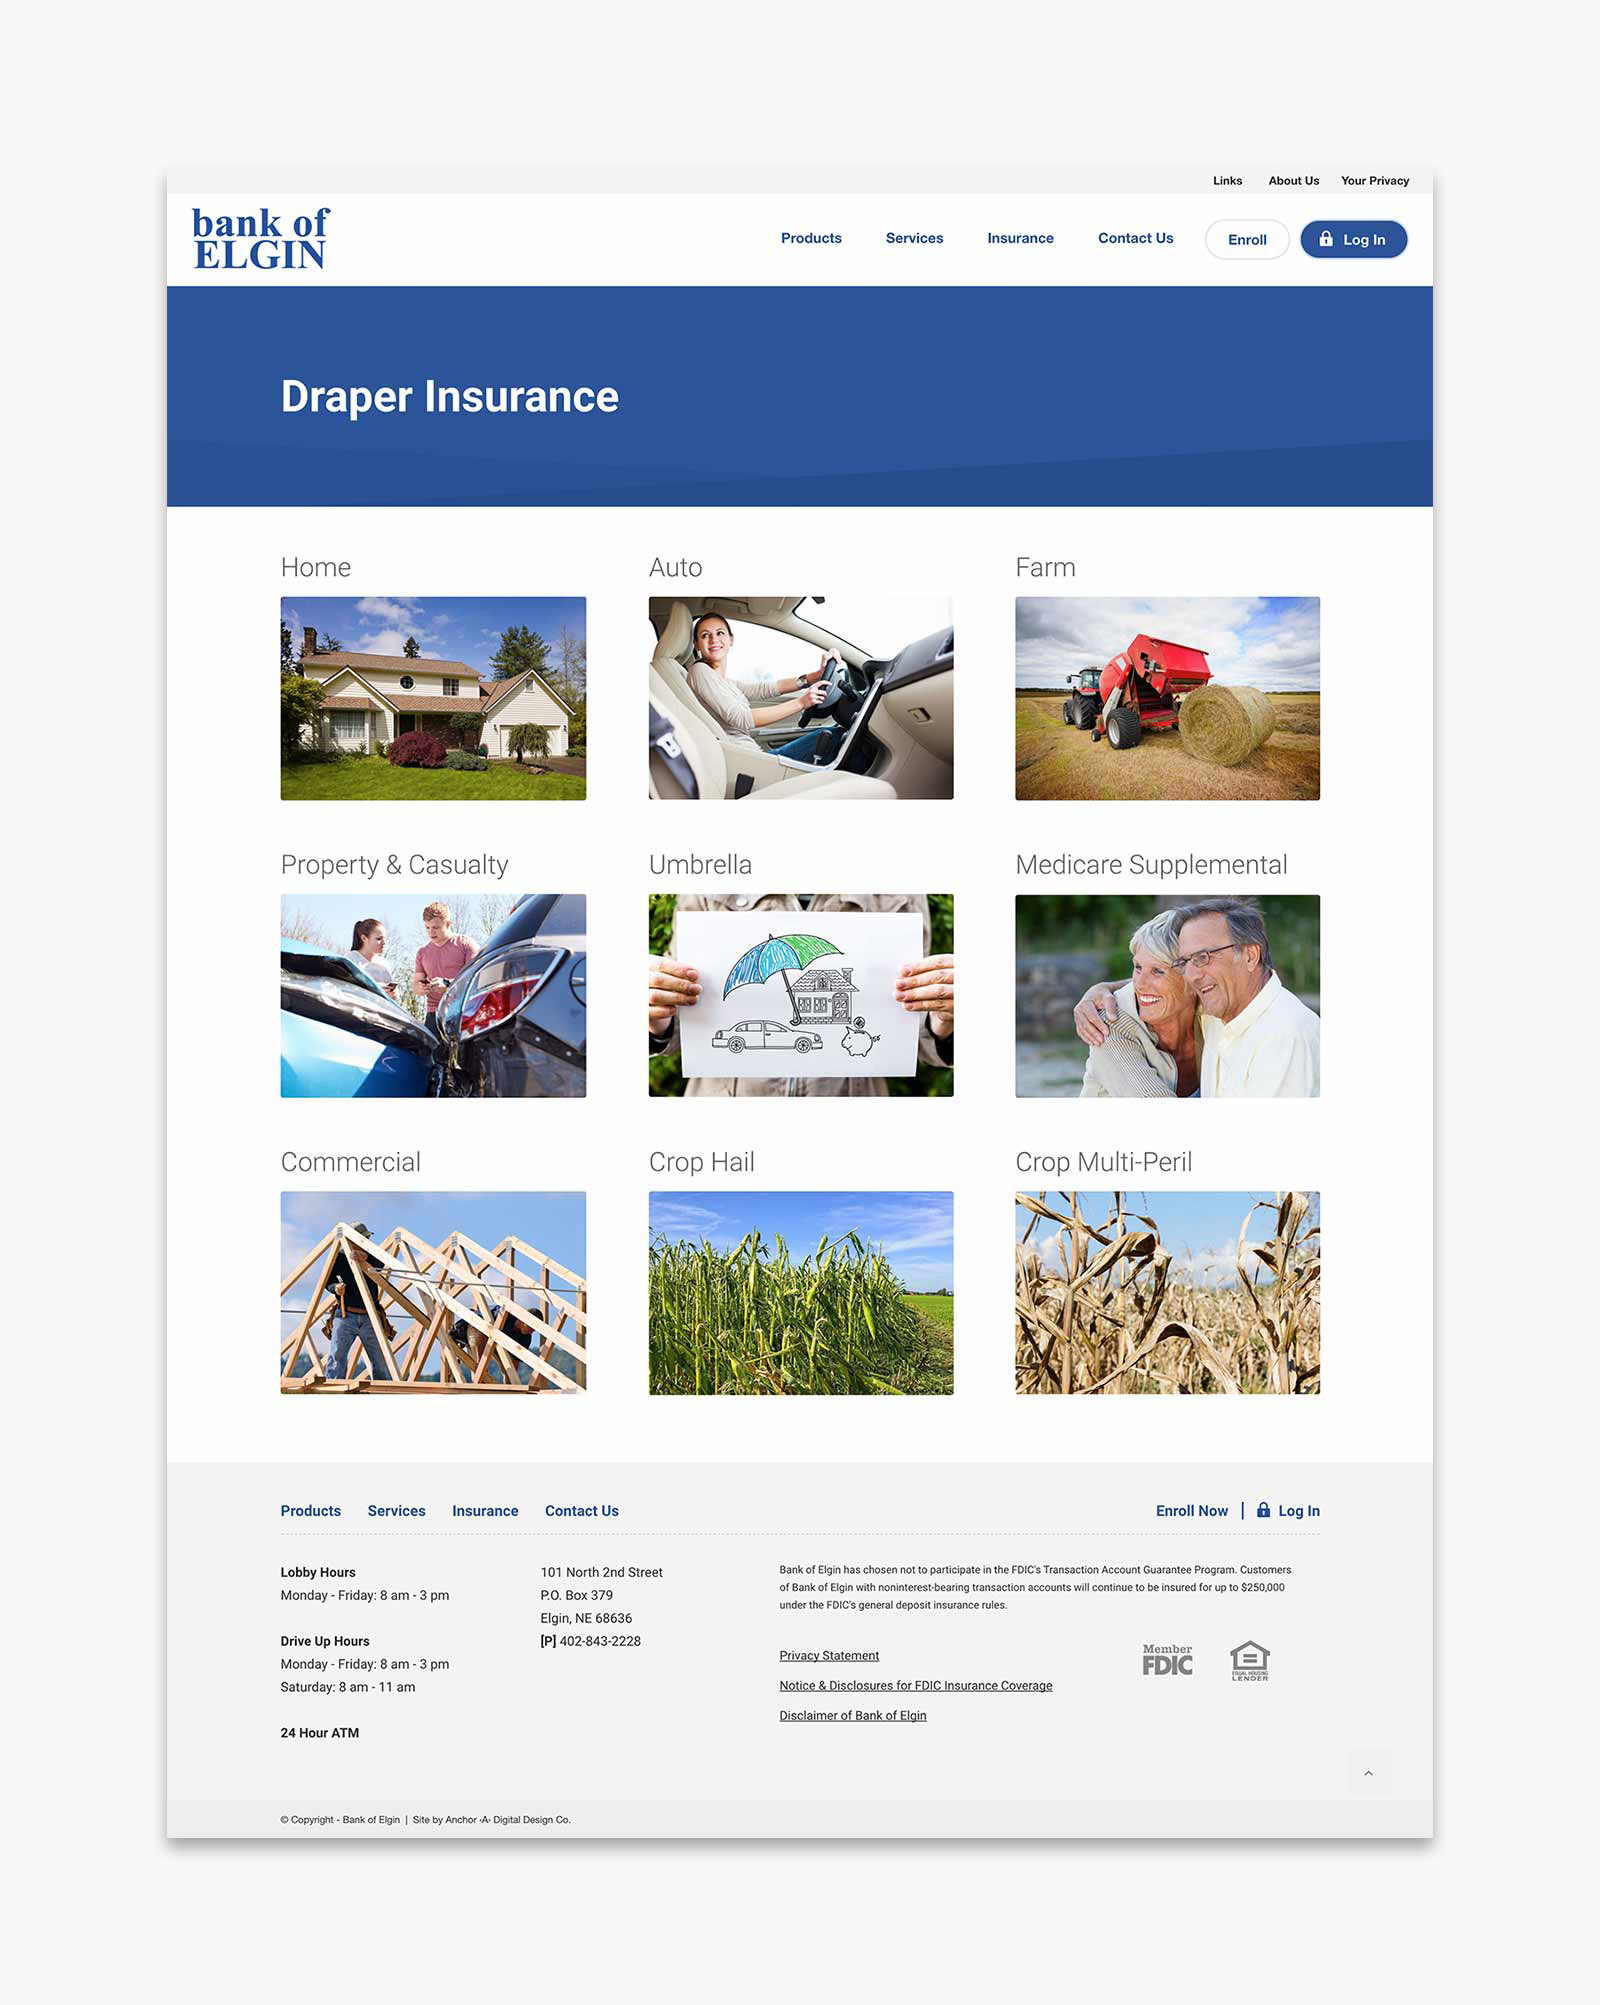 Bank of Elgin - Draper Insurance page layout for website